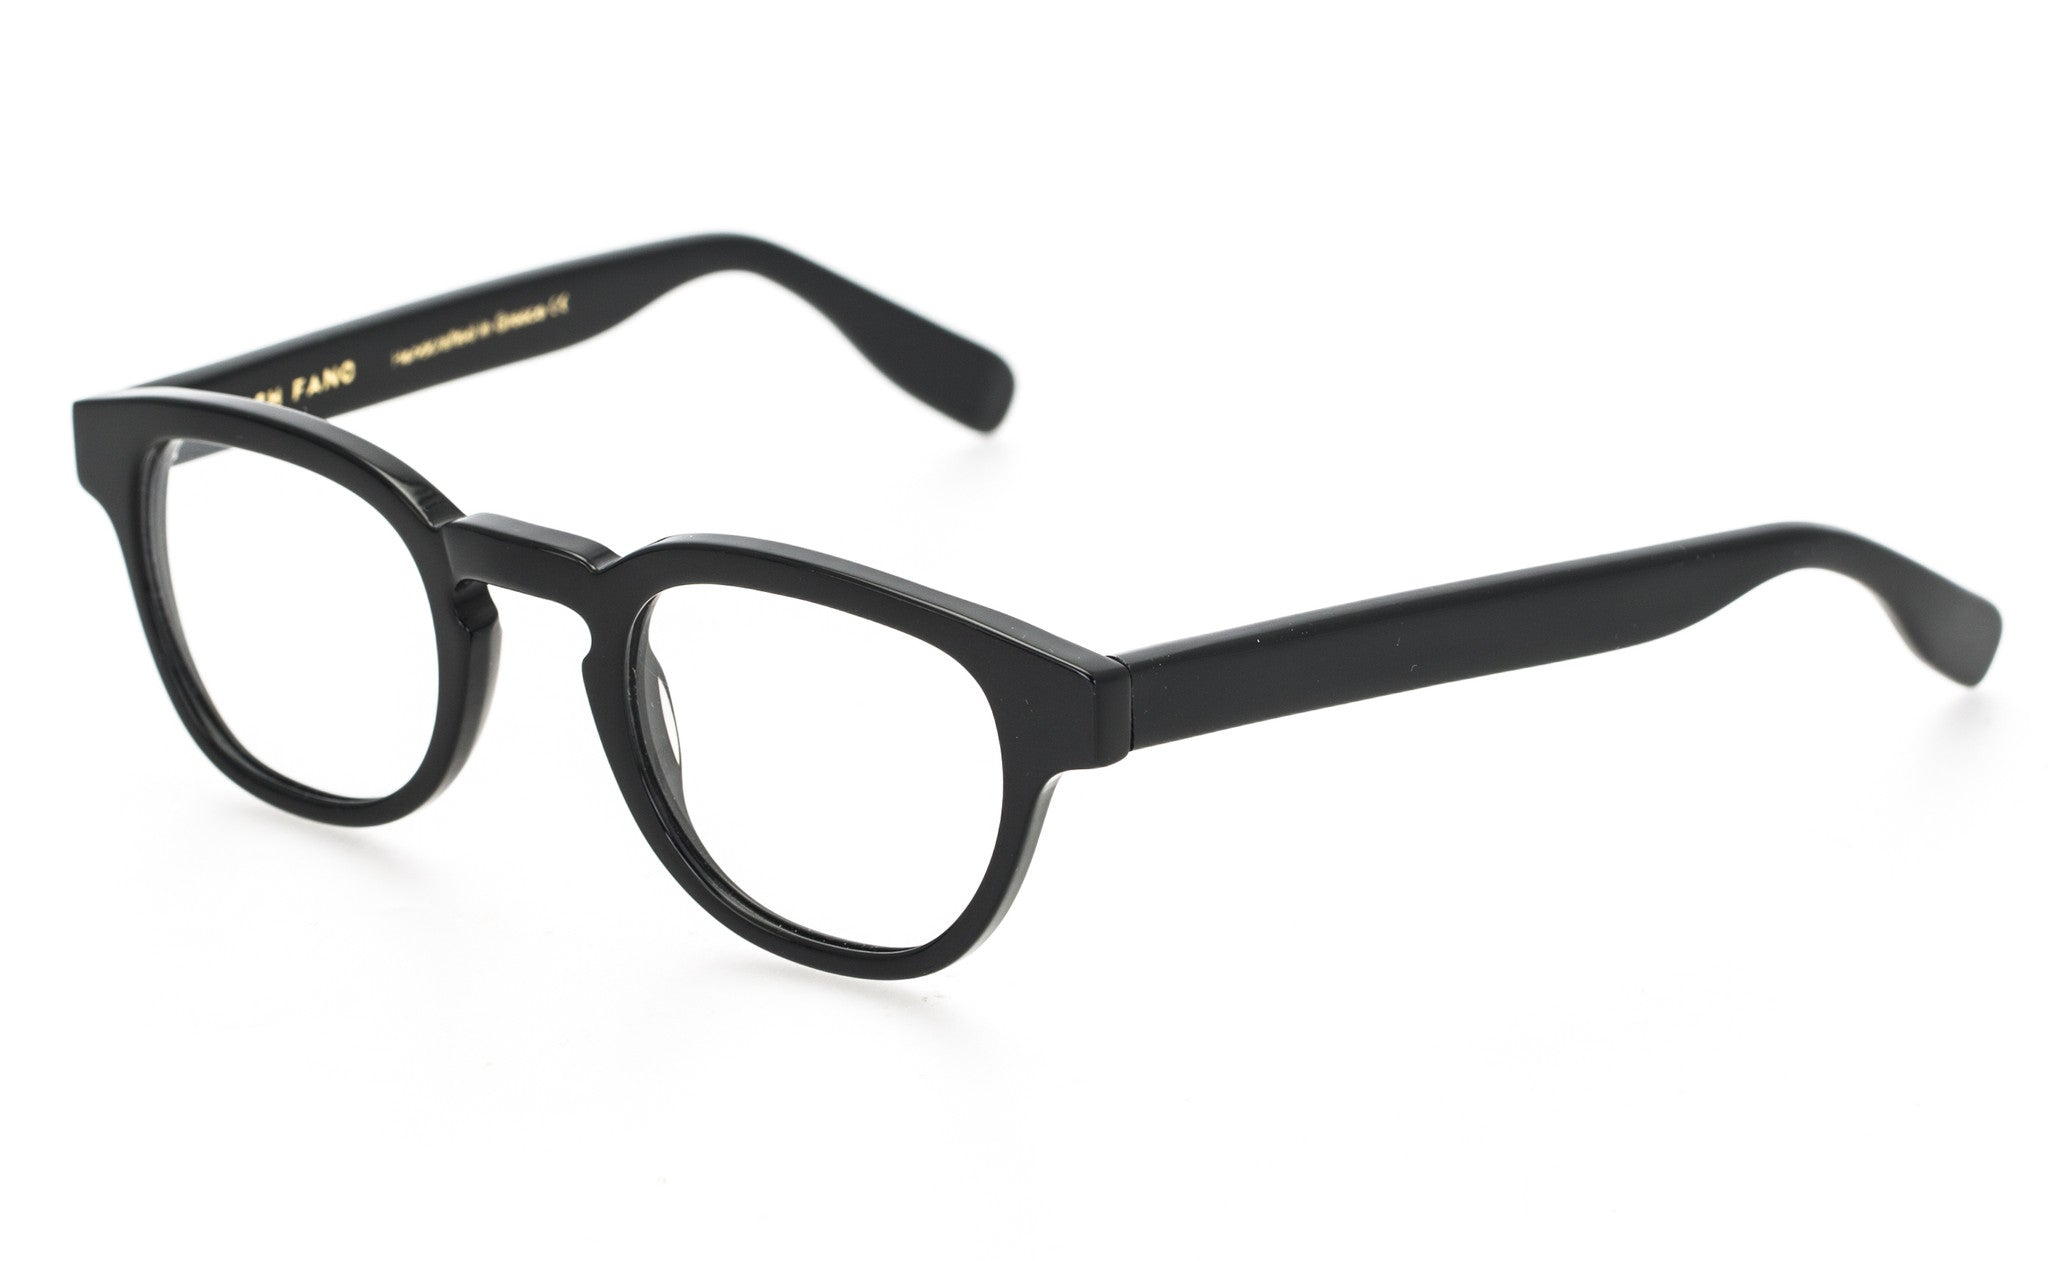 Oxford | Black - Josh Fano Prescription Glasses Uk